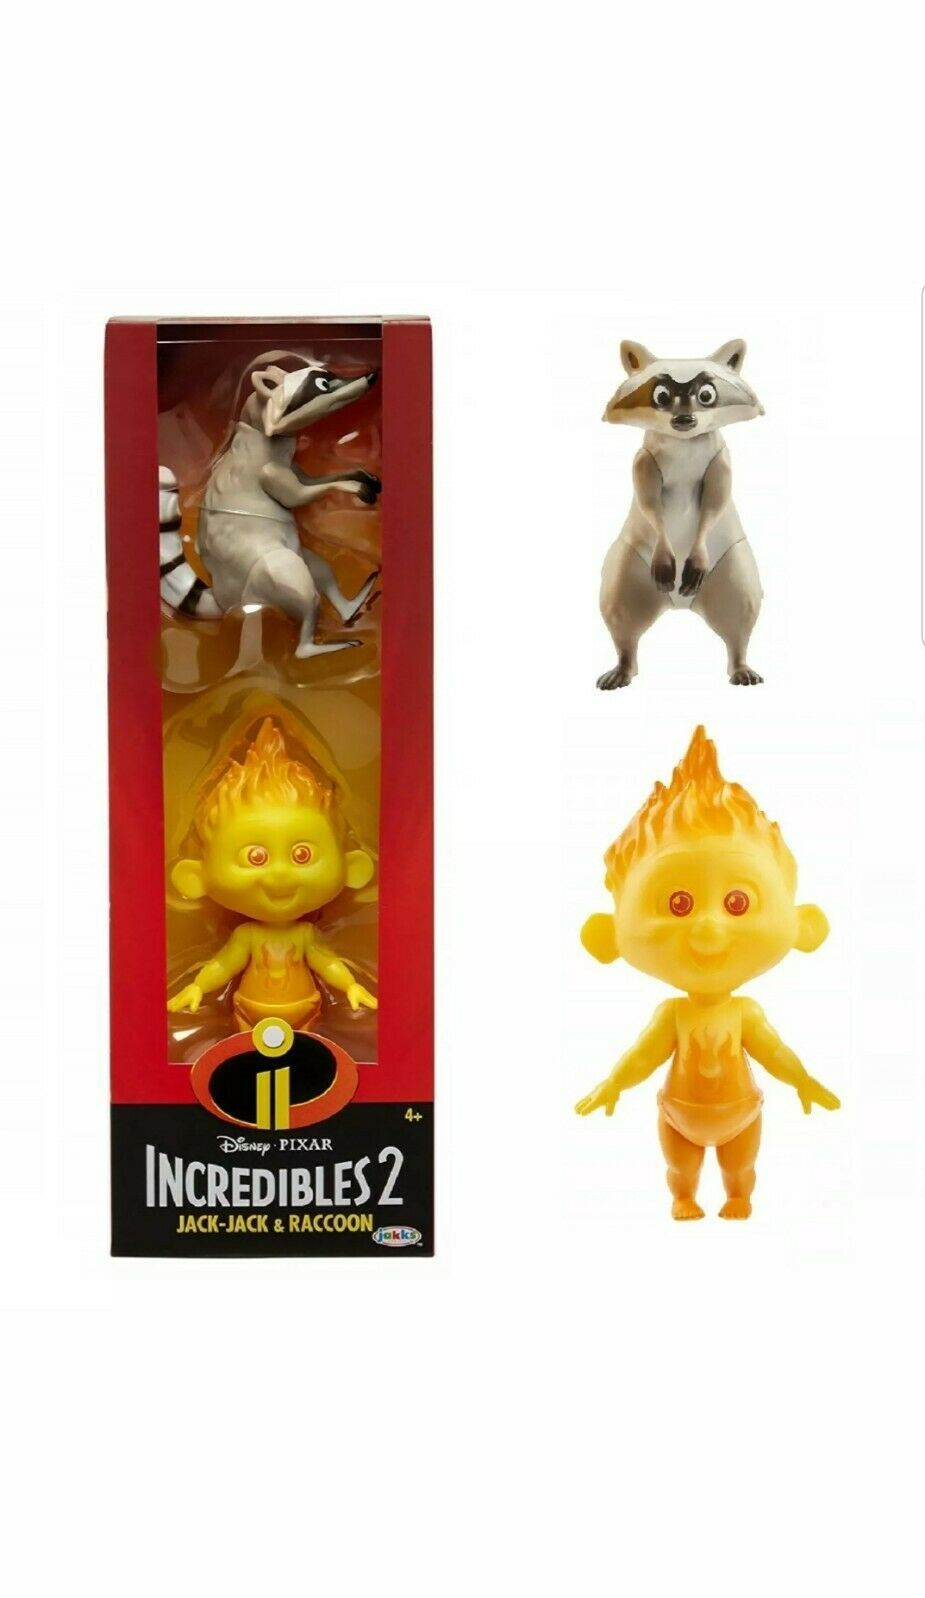 Primary image for Disney Pixar Incredibles 2 Fire Jack-Jack and Raccoon Action Figures Set - New